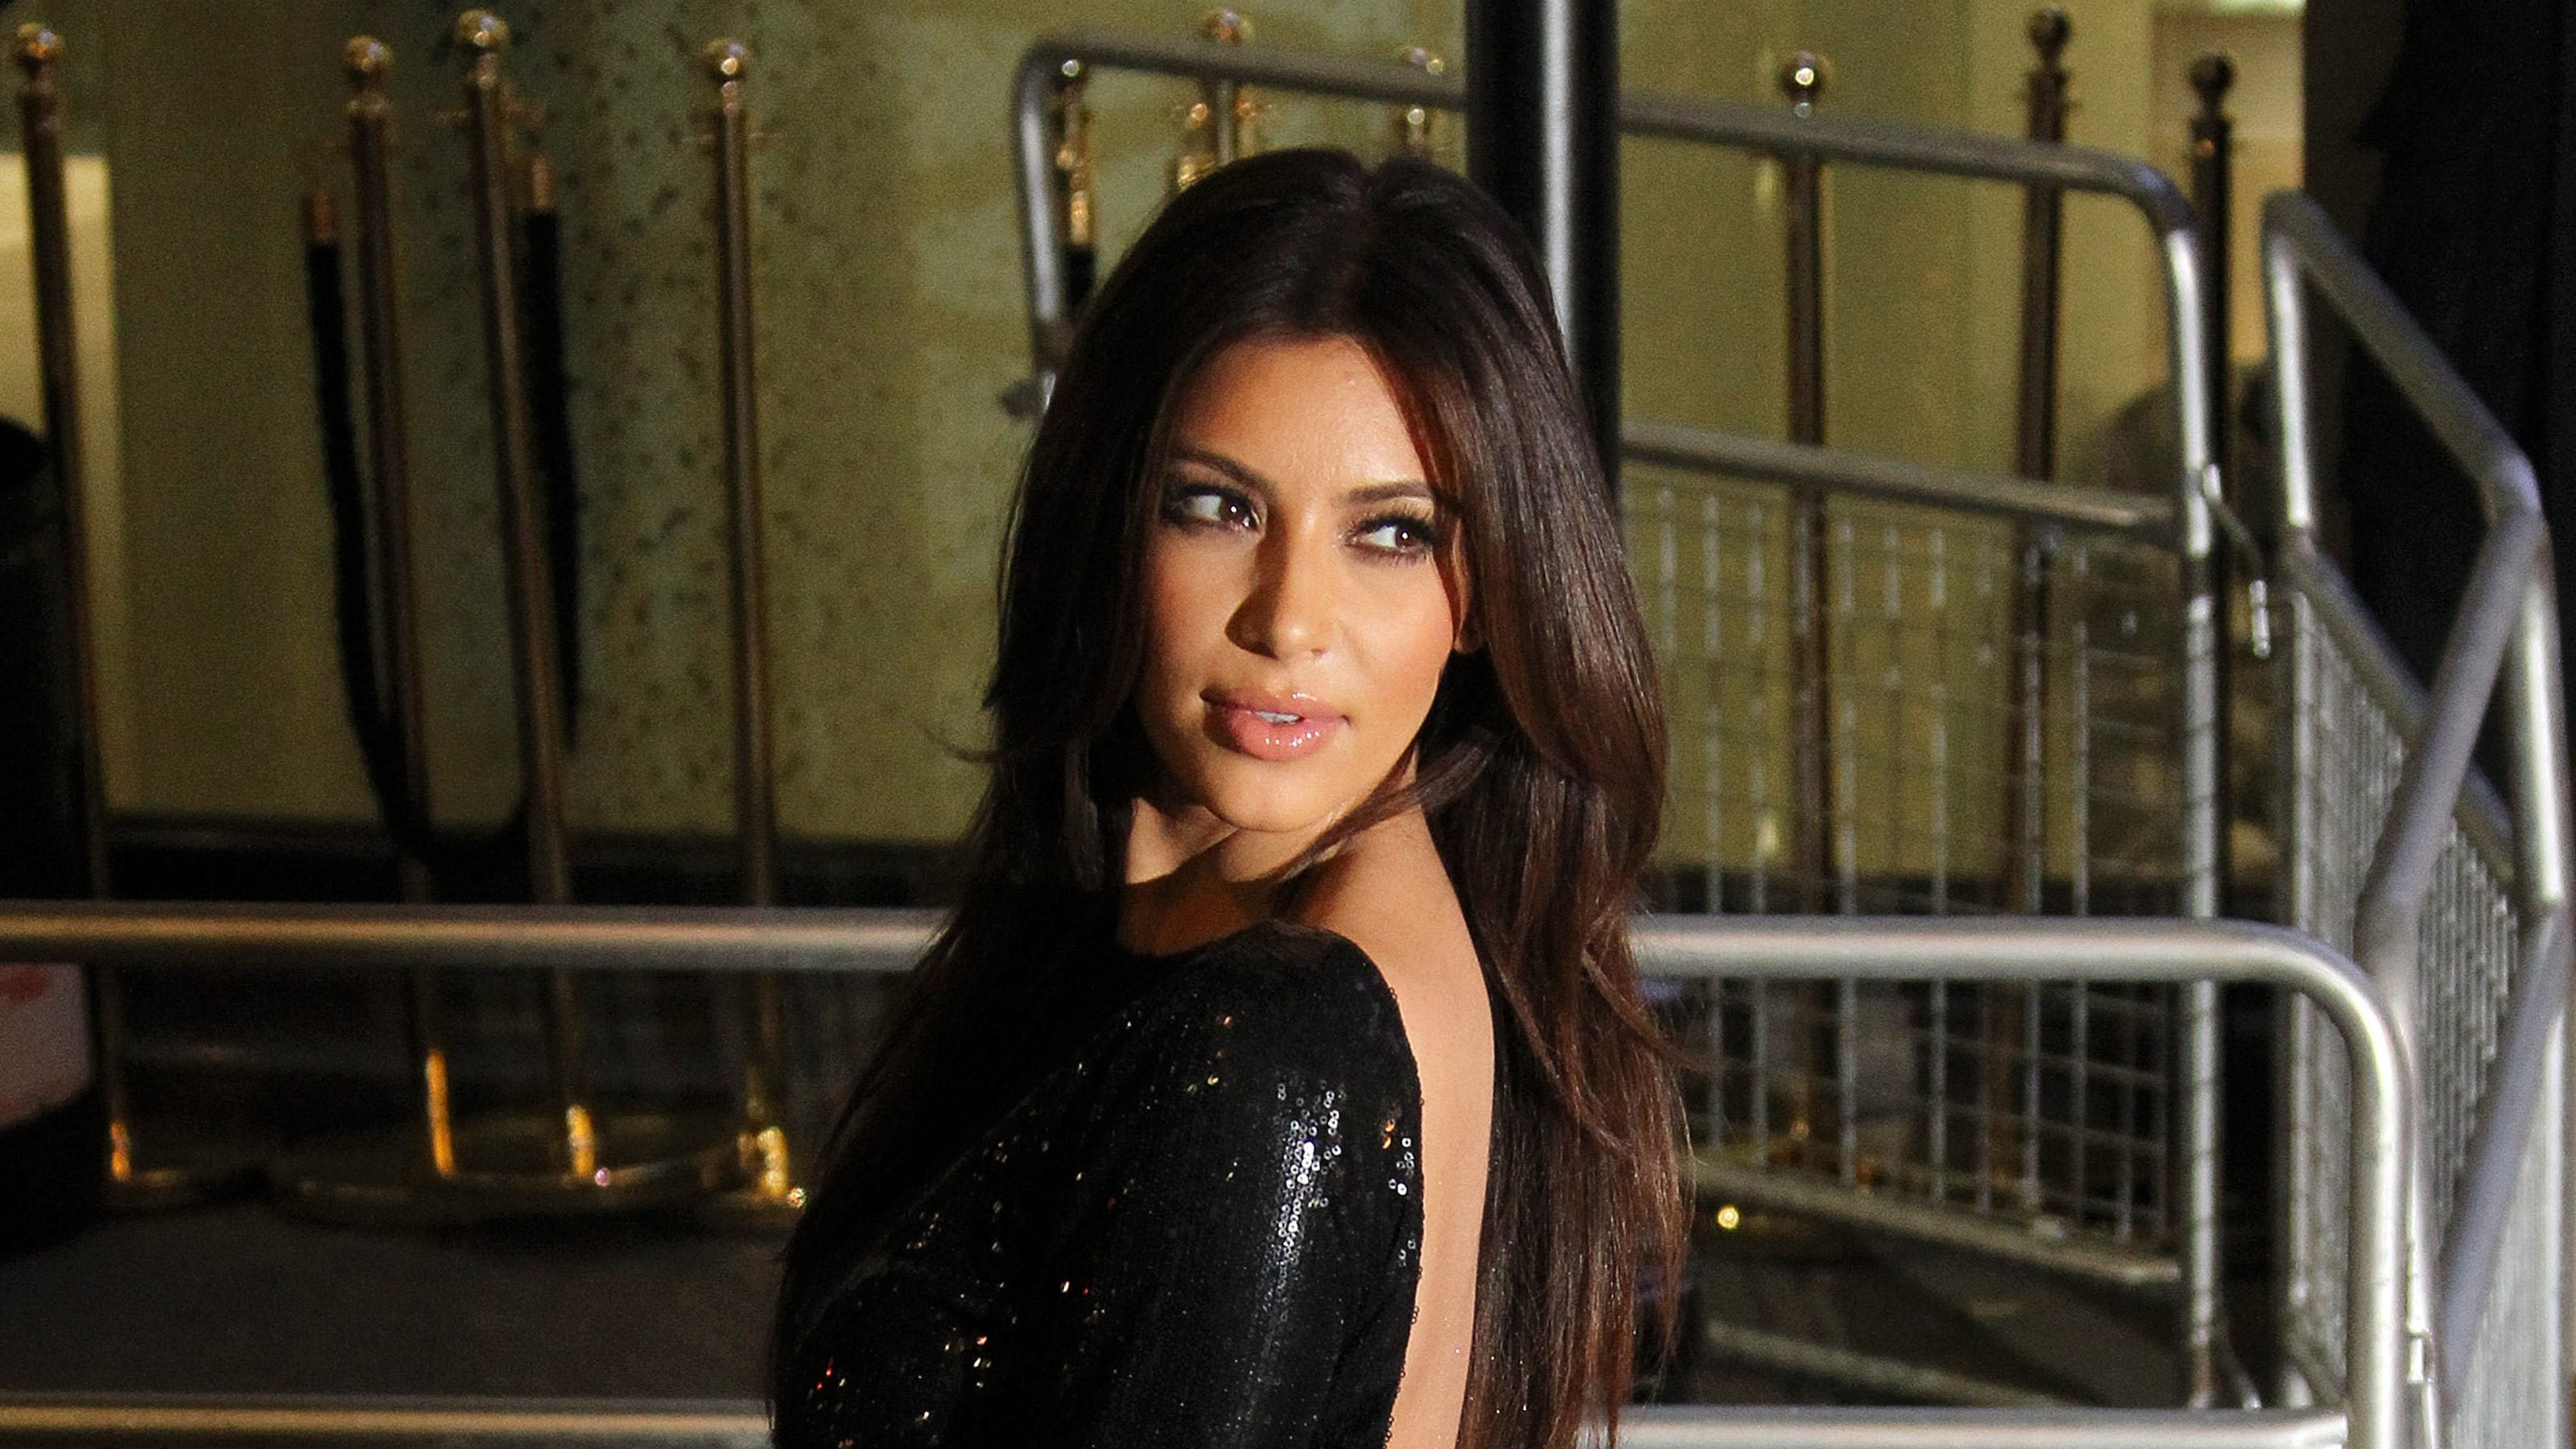 Kim Kardashian Is Bing's Most Searched Person Of 2012